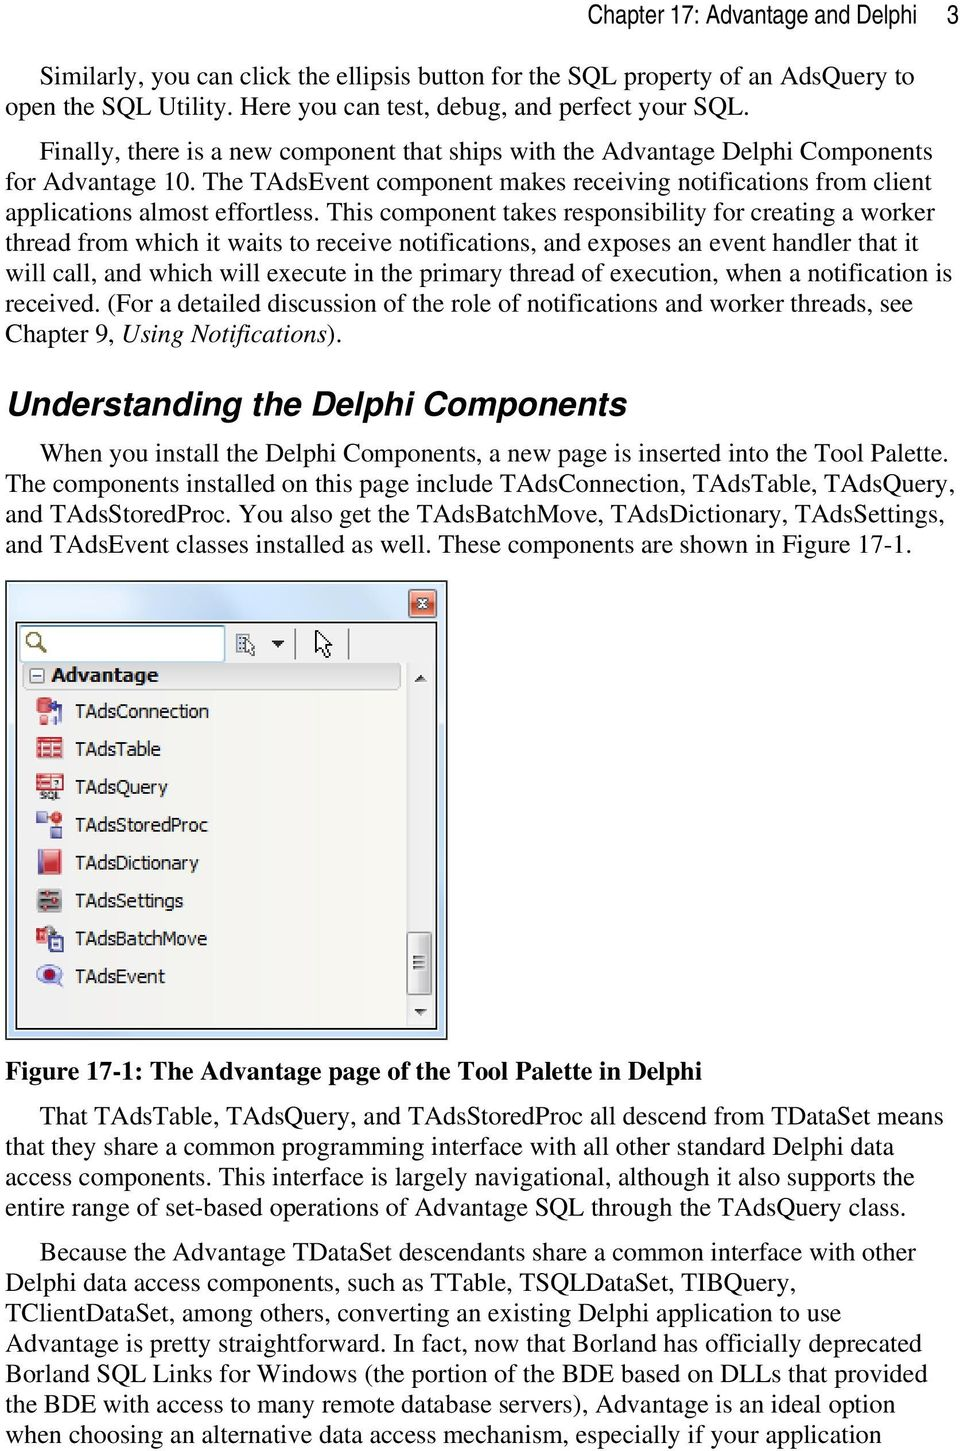 Chapter 17 Advantage and Delphi - PDF